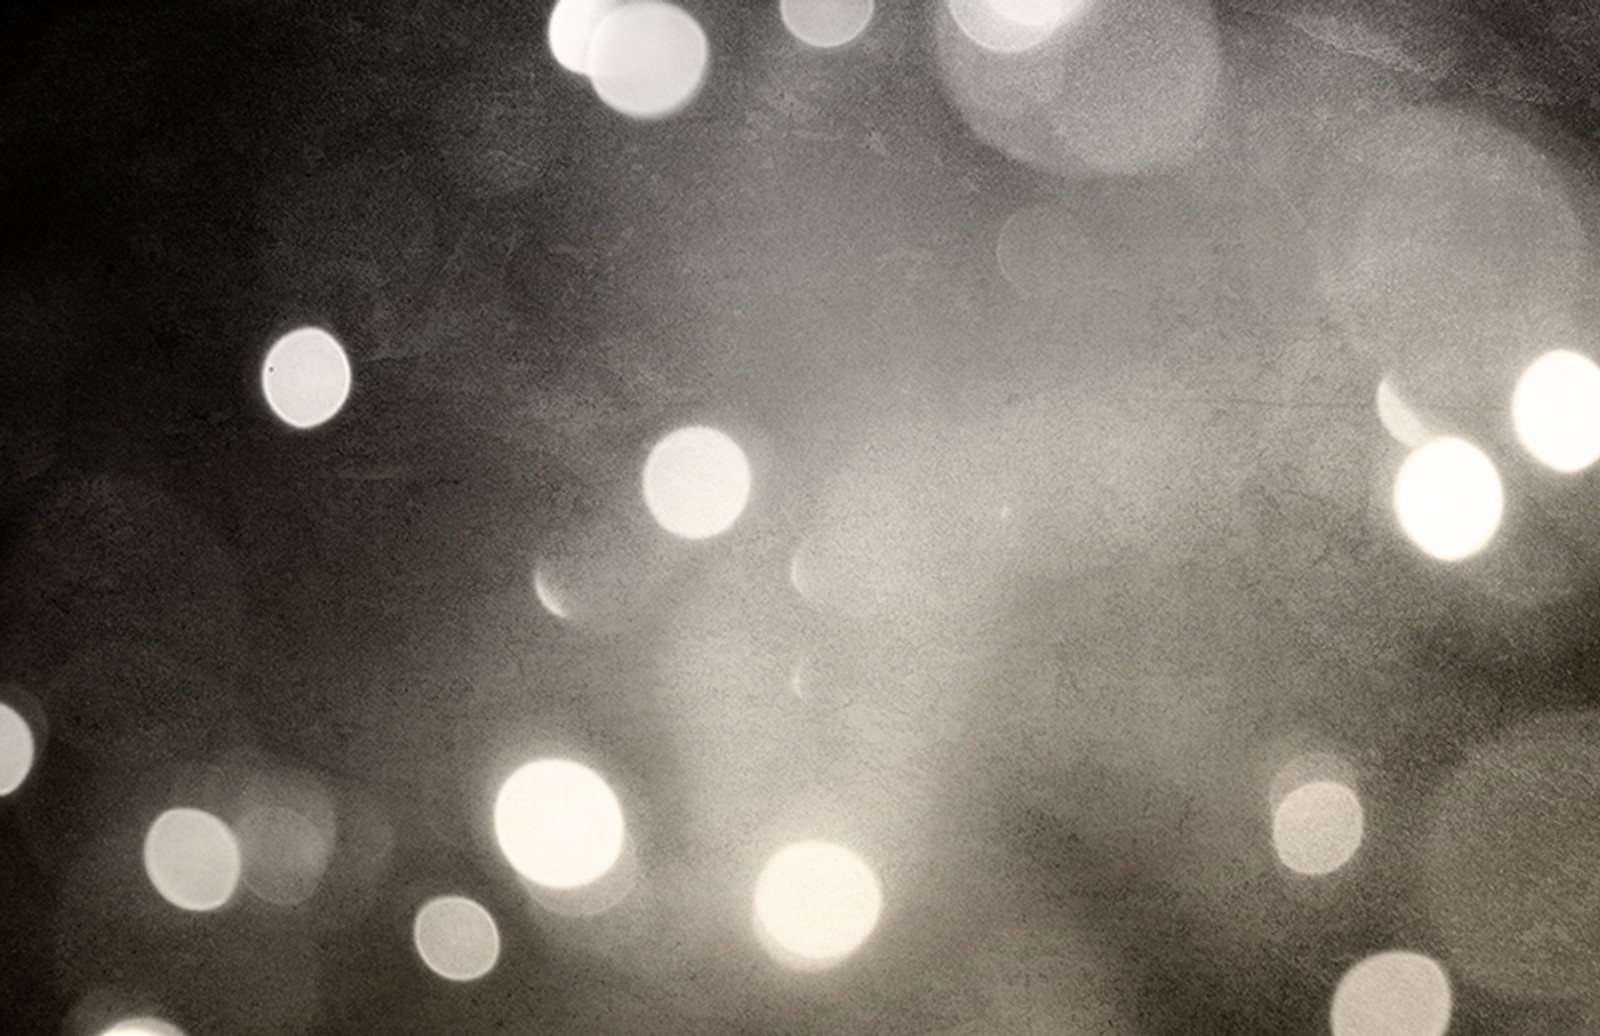 Vintage  Bokeh  Grunge  Backgrounds 800X518 1